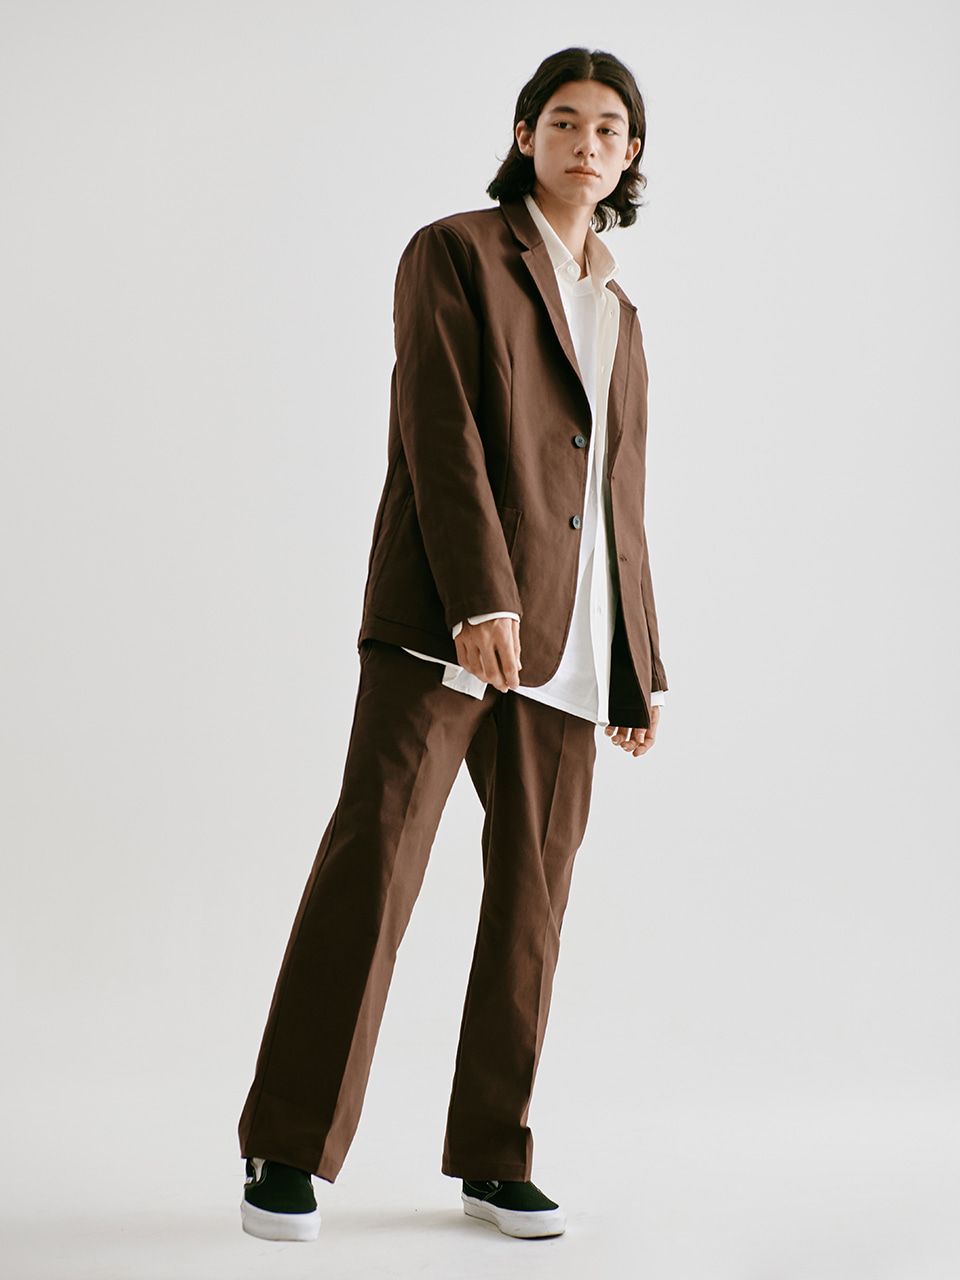 [FW20 Sounds Life] Oxford Club Pants(Brown) 스테레오 바이널즈[FW20 Sounds Life] Oxford Club Pants(Brown)